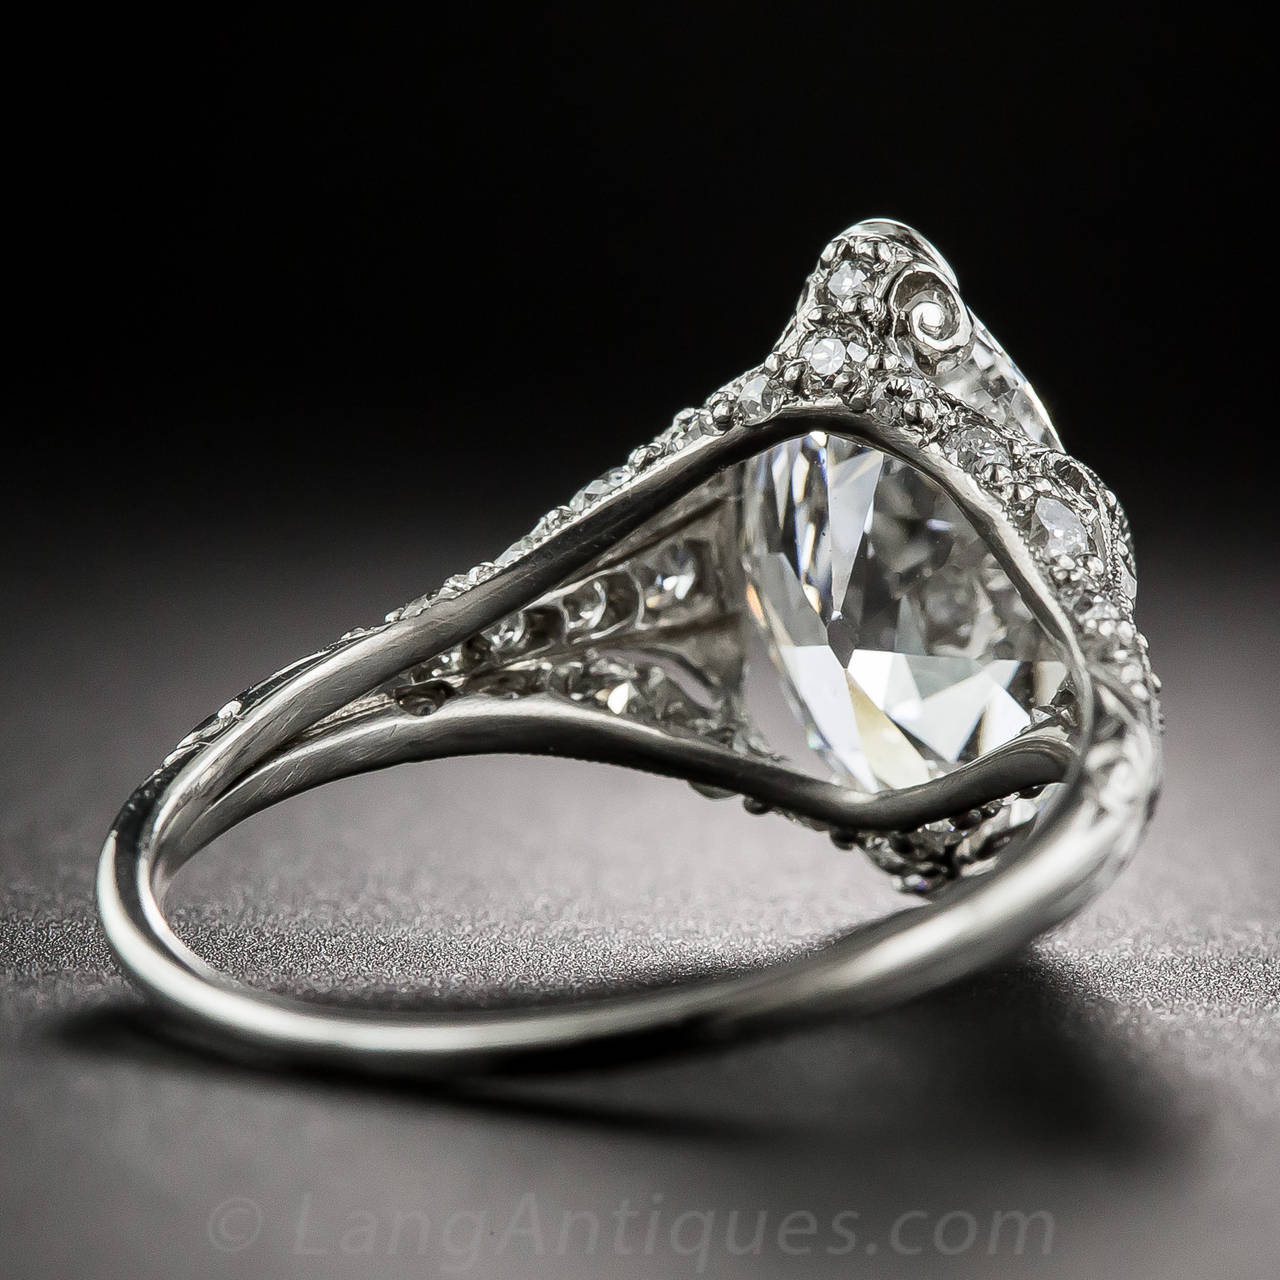 Tiffany & Co. Edwardian 3.14 Carat Marquise Diamond Platinum Ring 5